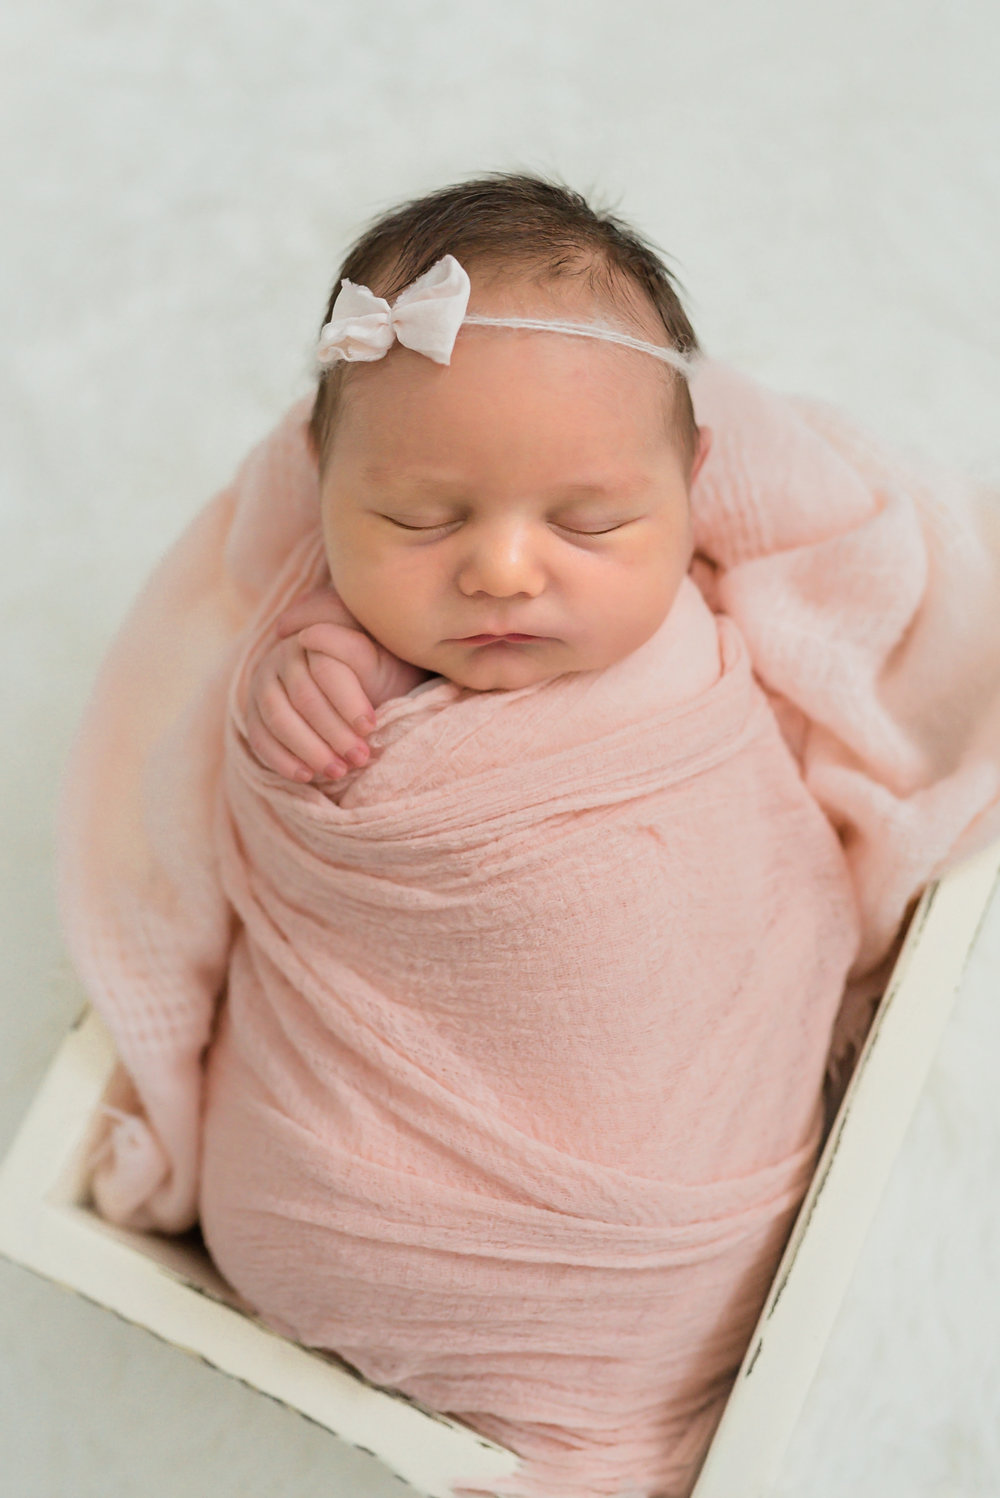 Summerville-Newborn-Photographer-Following-Seas-Photography-FSP_9124 copy.jpg